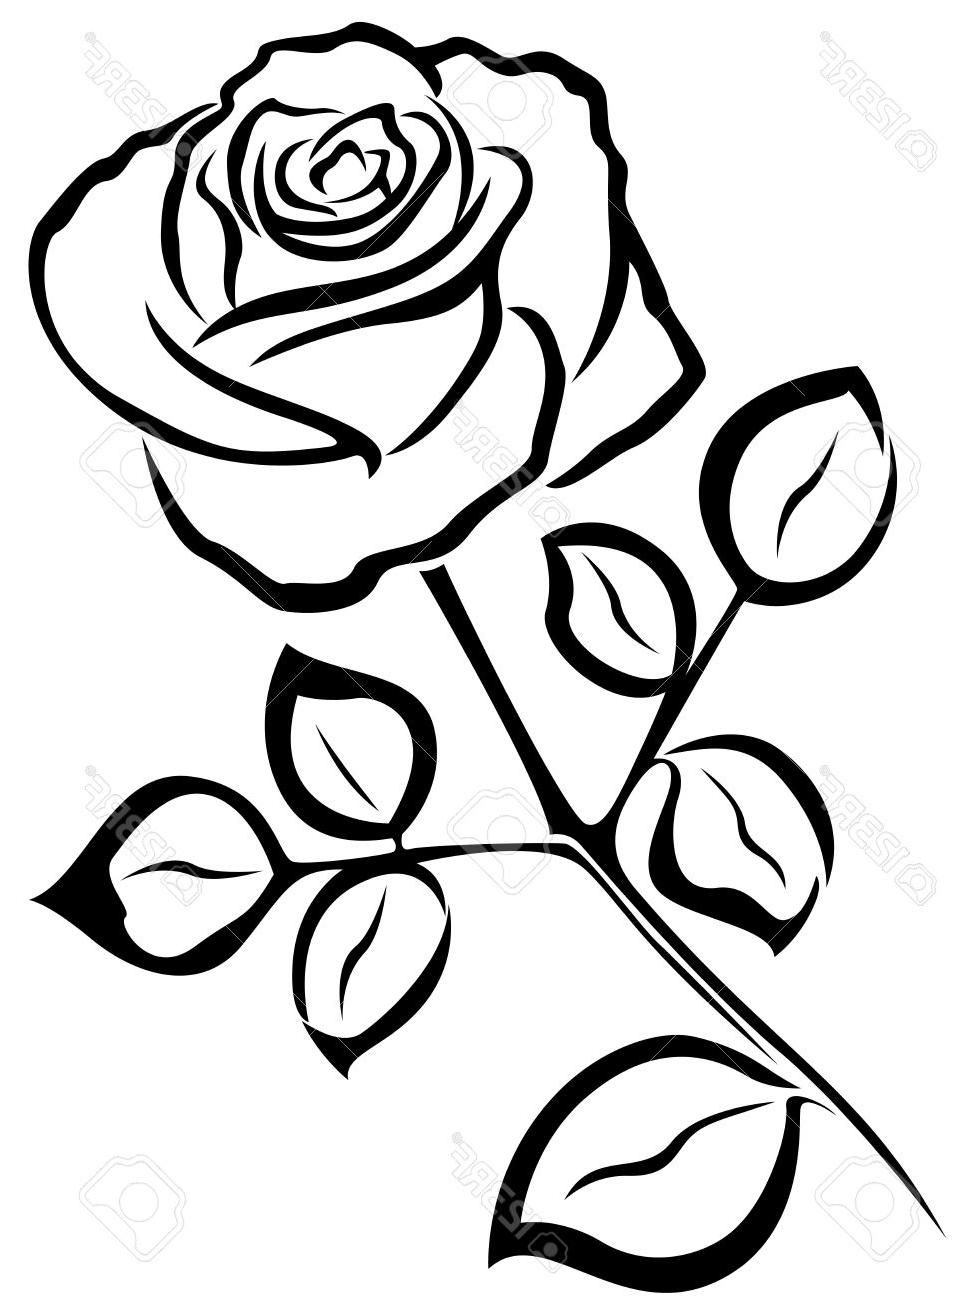 The best free Rose drawing images. Download from 14150 free drawings of Rose at GetDrawings